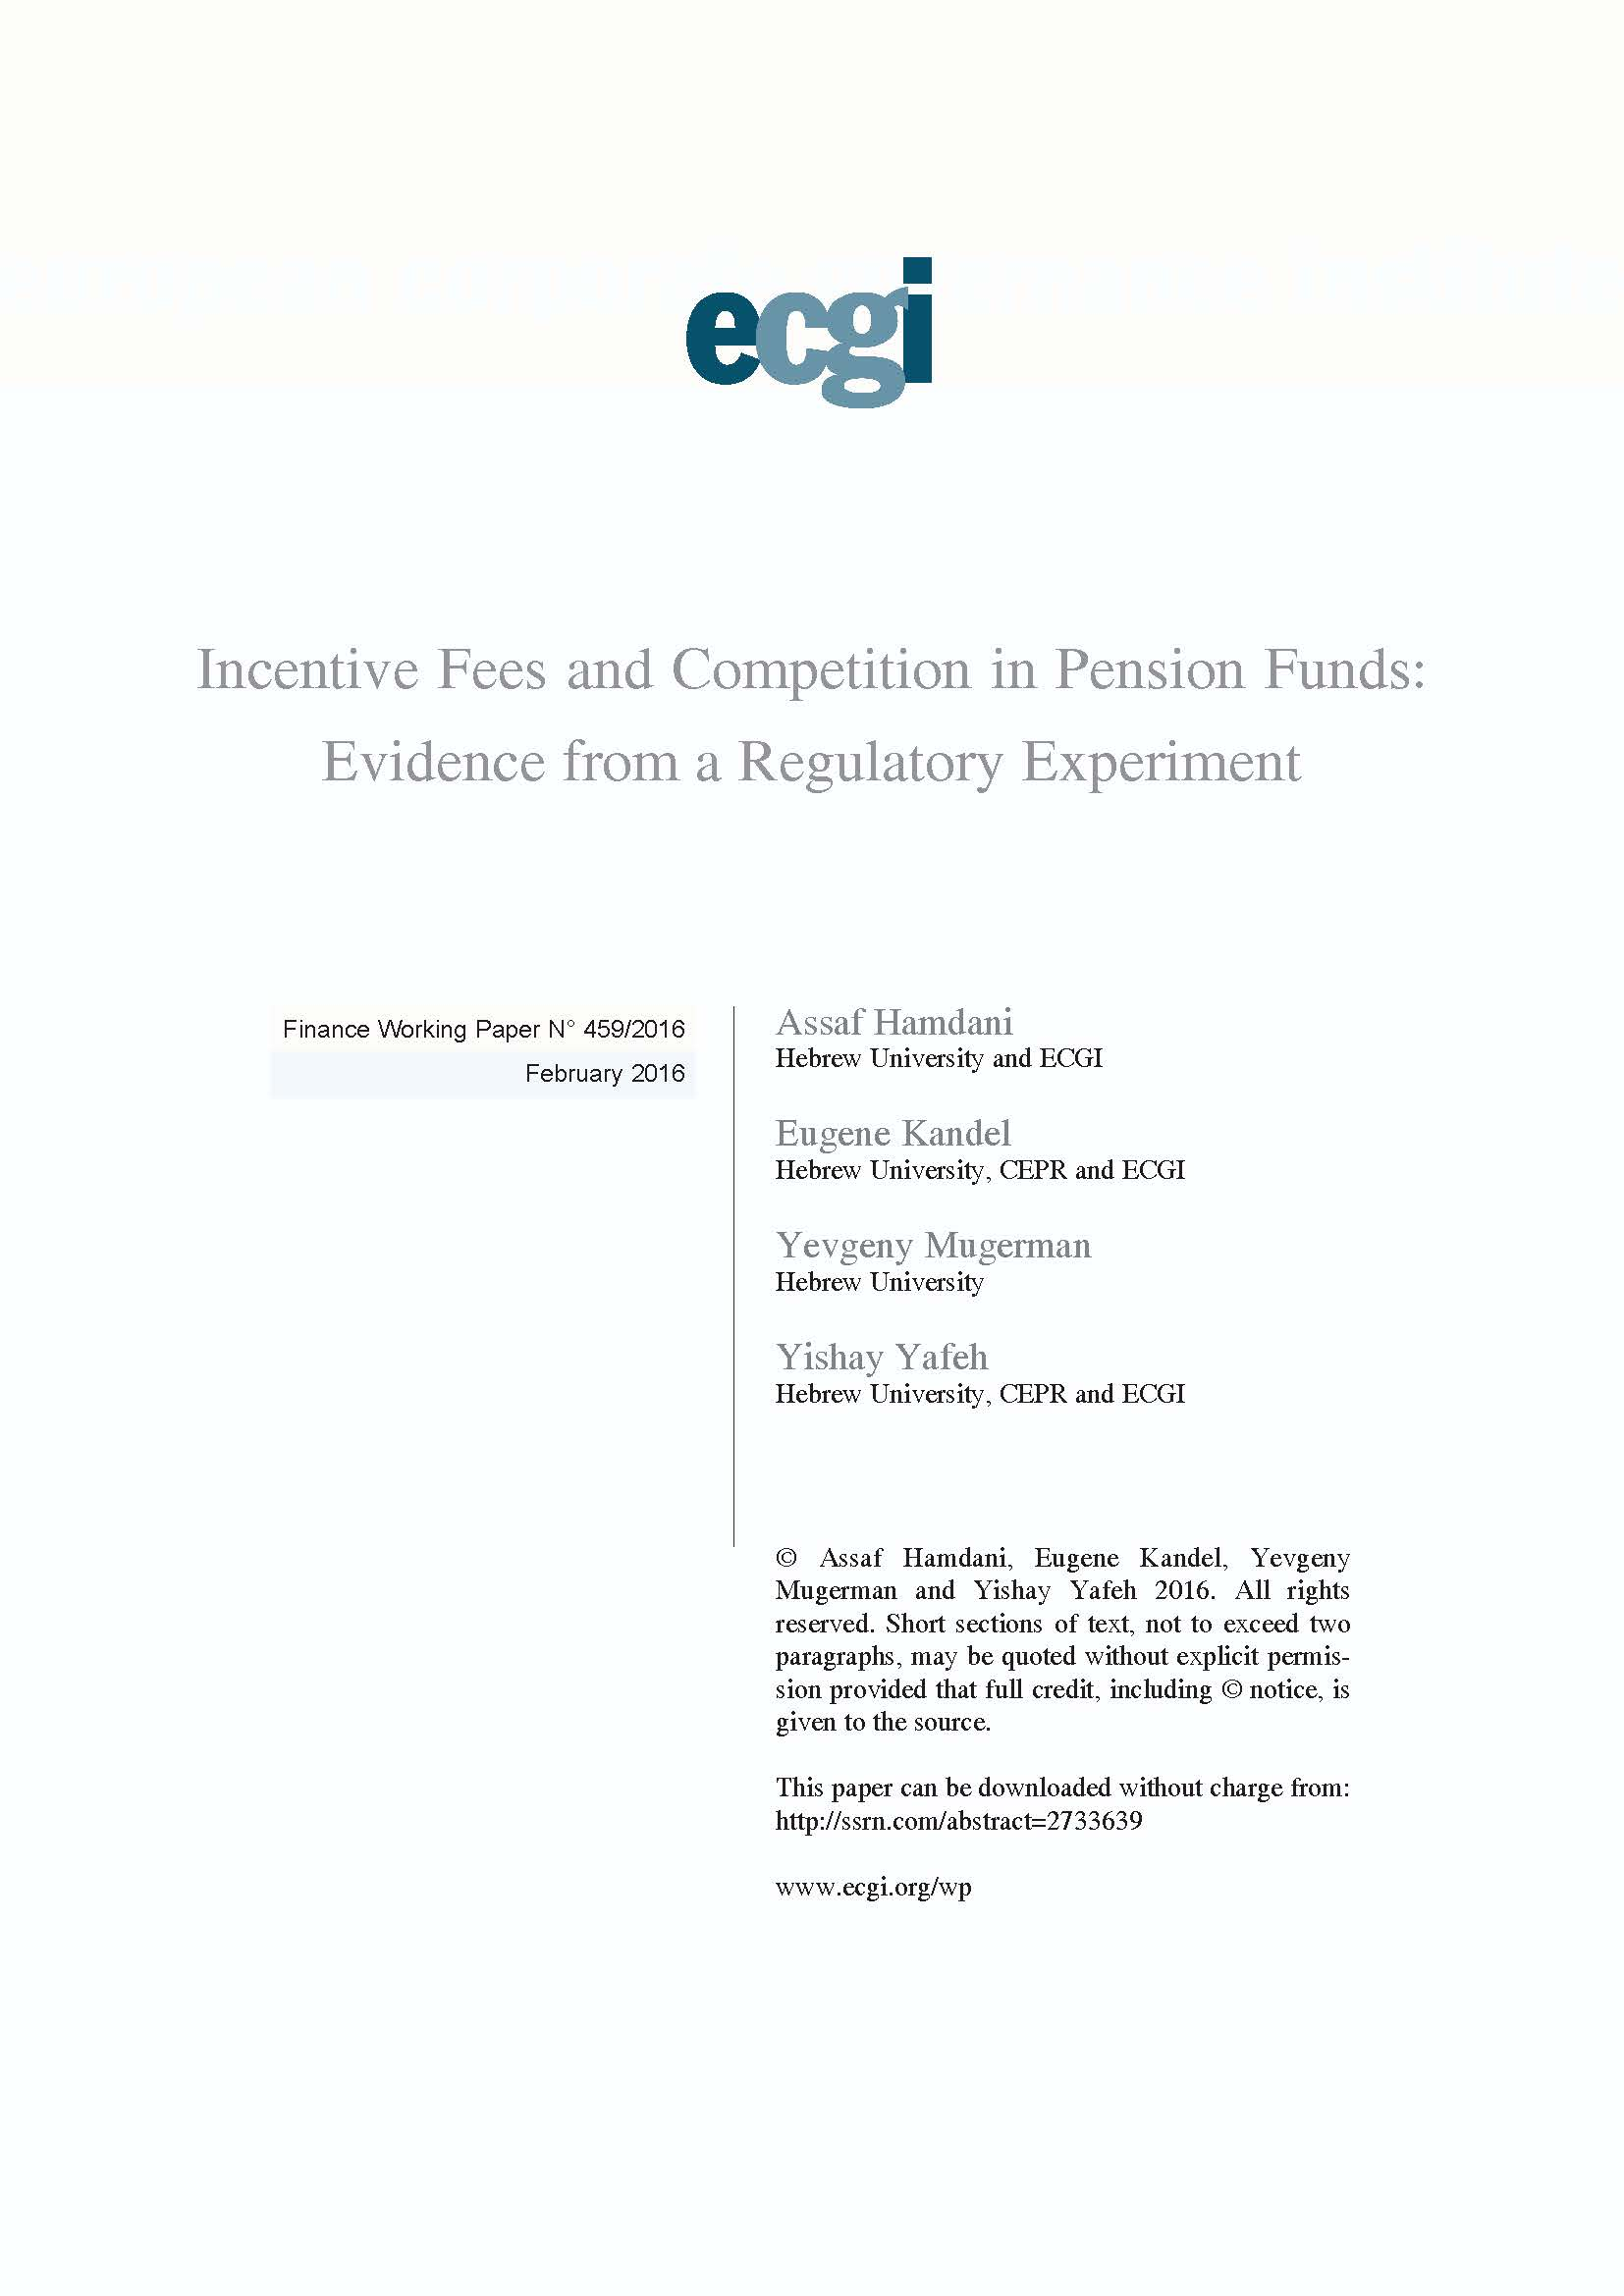 Thomas organ company pension - Incentive Fees And Competition In Pension Funds Evidence From A Regulatory Experiment